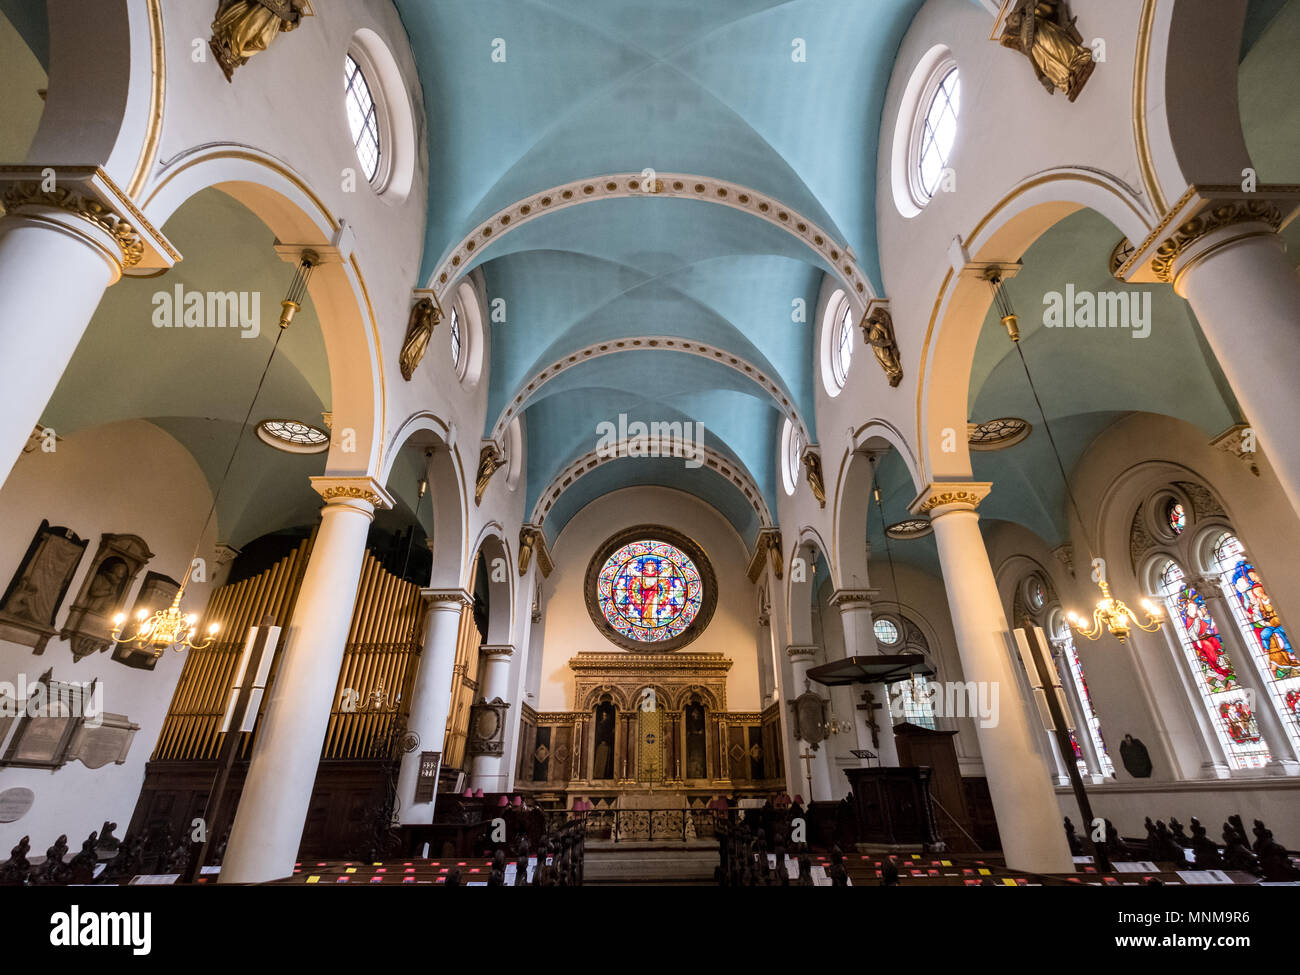 St Michaels Church Cornhill London UK Historic In The City Of Designed By Wren And Hawksmoor With Neo Gothic Interior